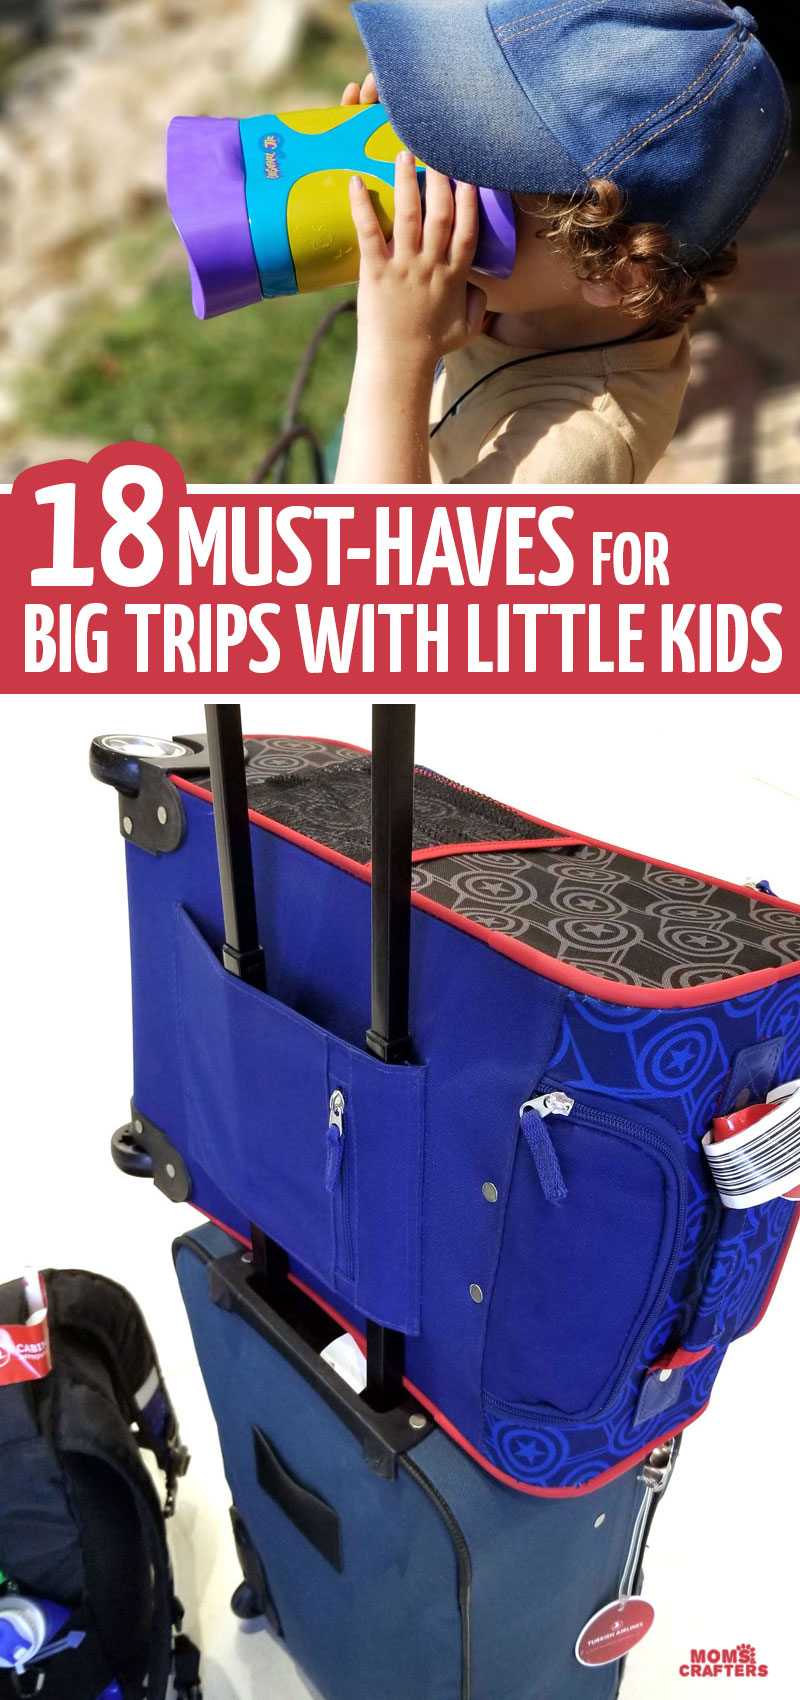 18 must haves for international travel with kids plus tips for traveling with toddlers preschoolers and big kids. This must-have travel gear will help your long haul flight go more smoothly.